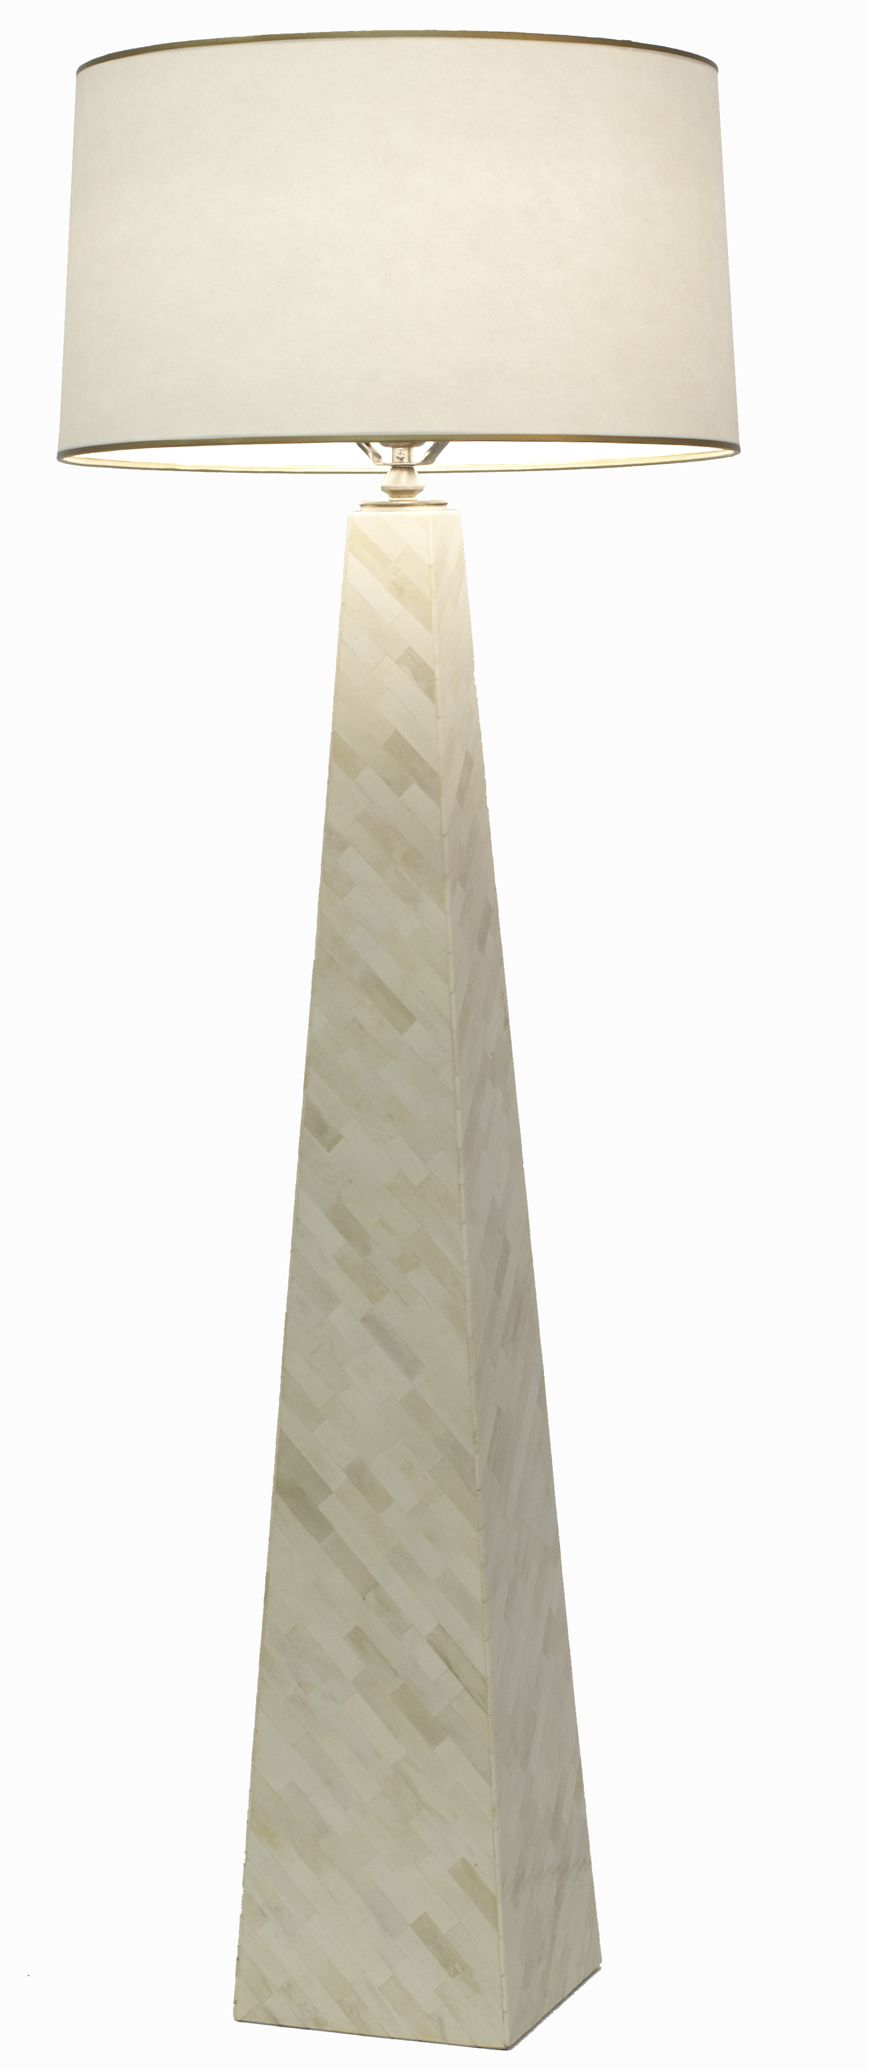 This striking floor lamp has a narrow pyramid shape with a diagonal this striking floor lamp has a narrow pyramid shape with a diagonal pattern of camel bone mozeypictures Gallery